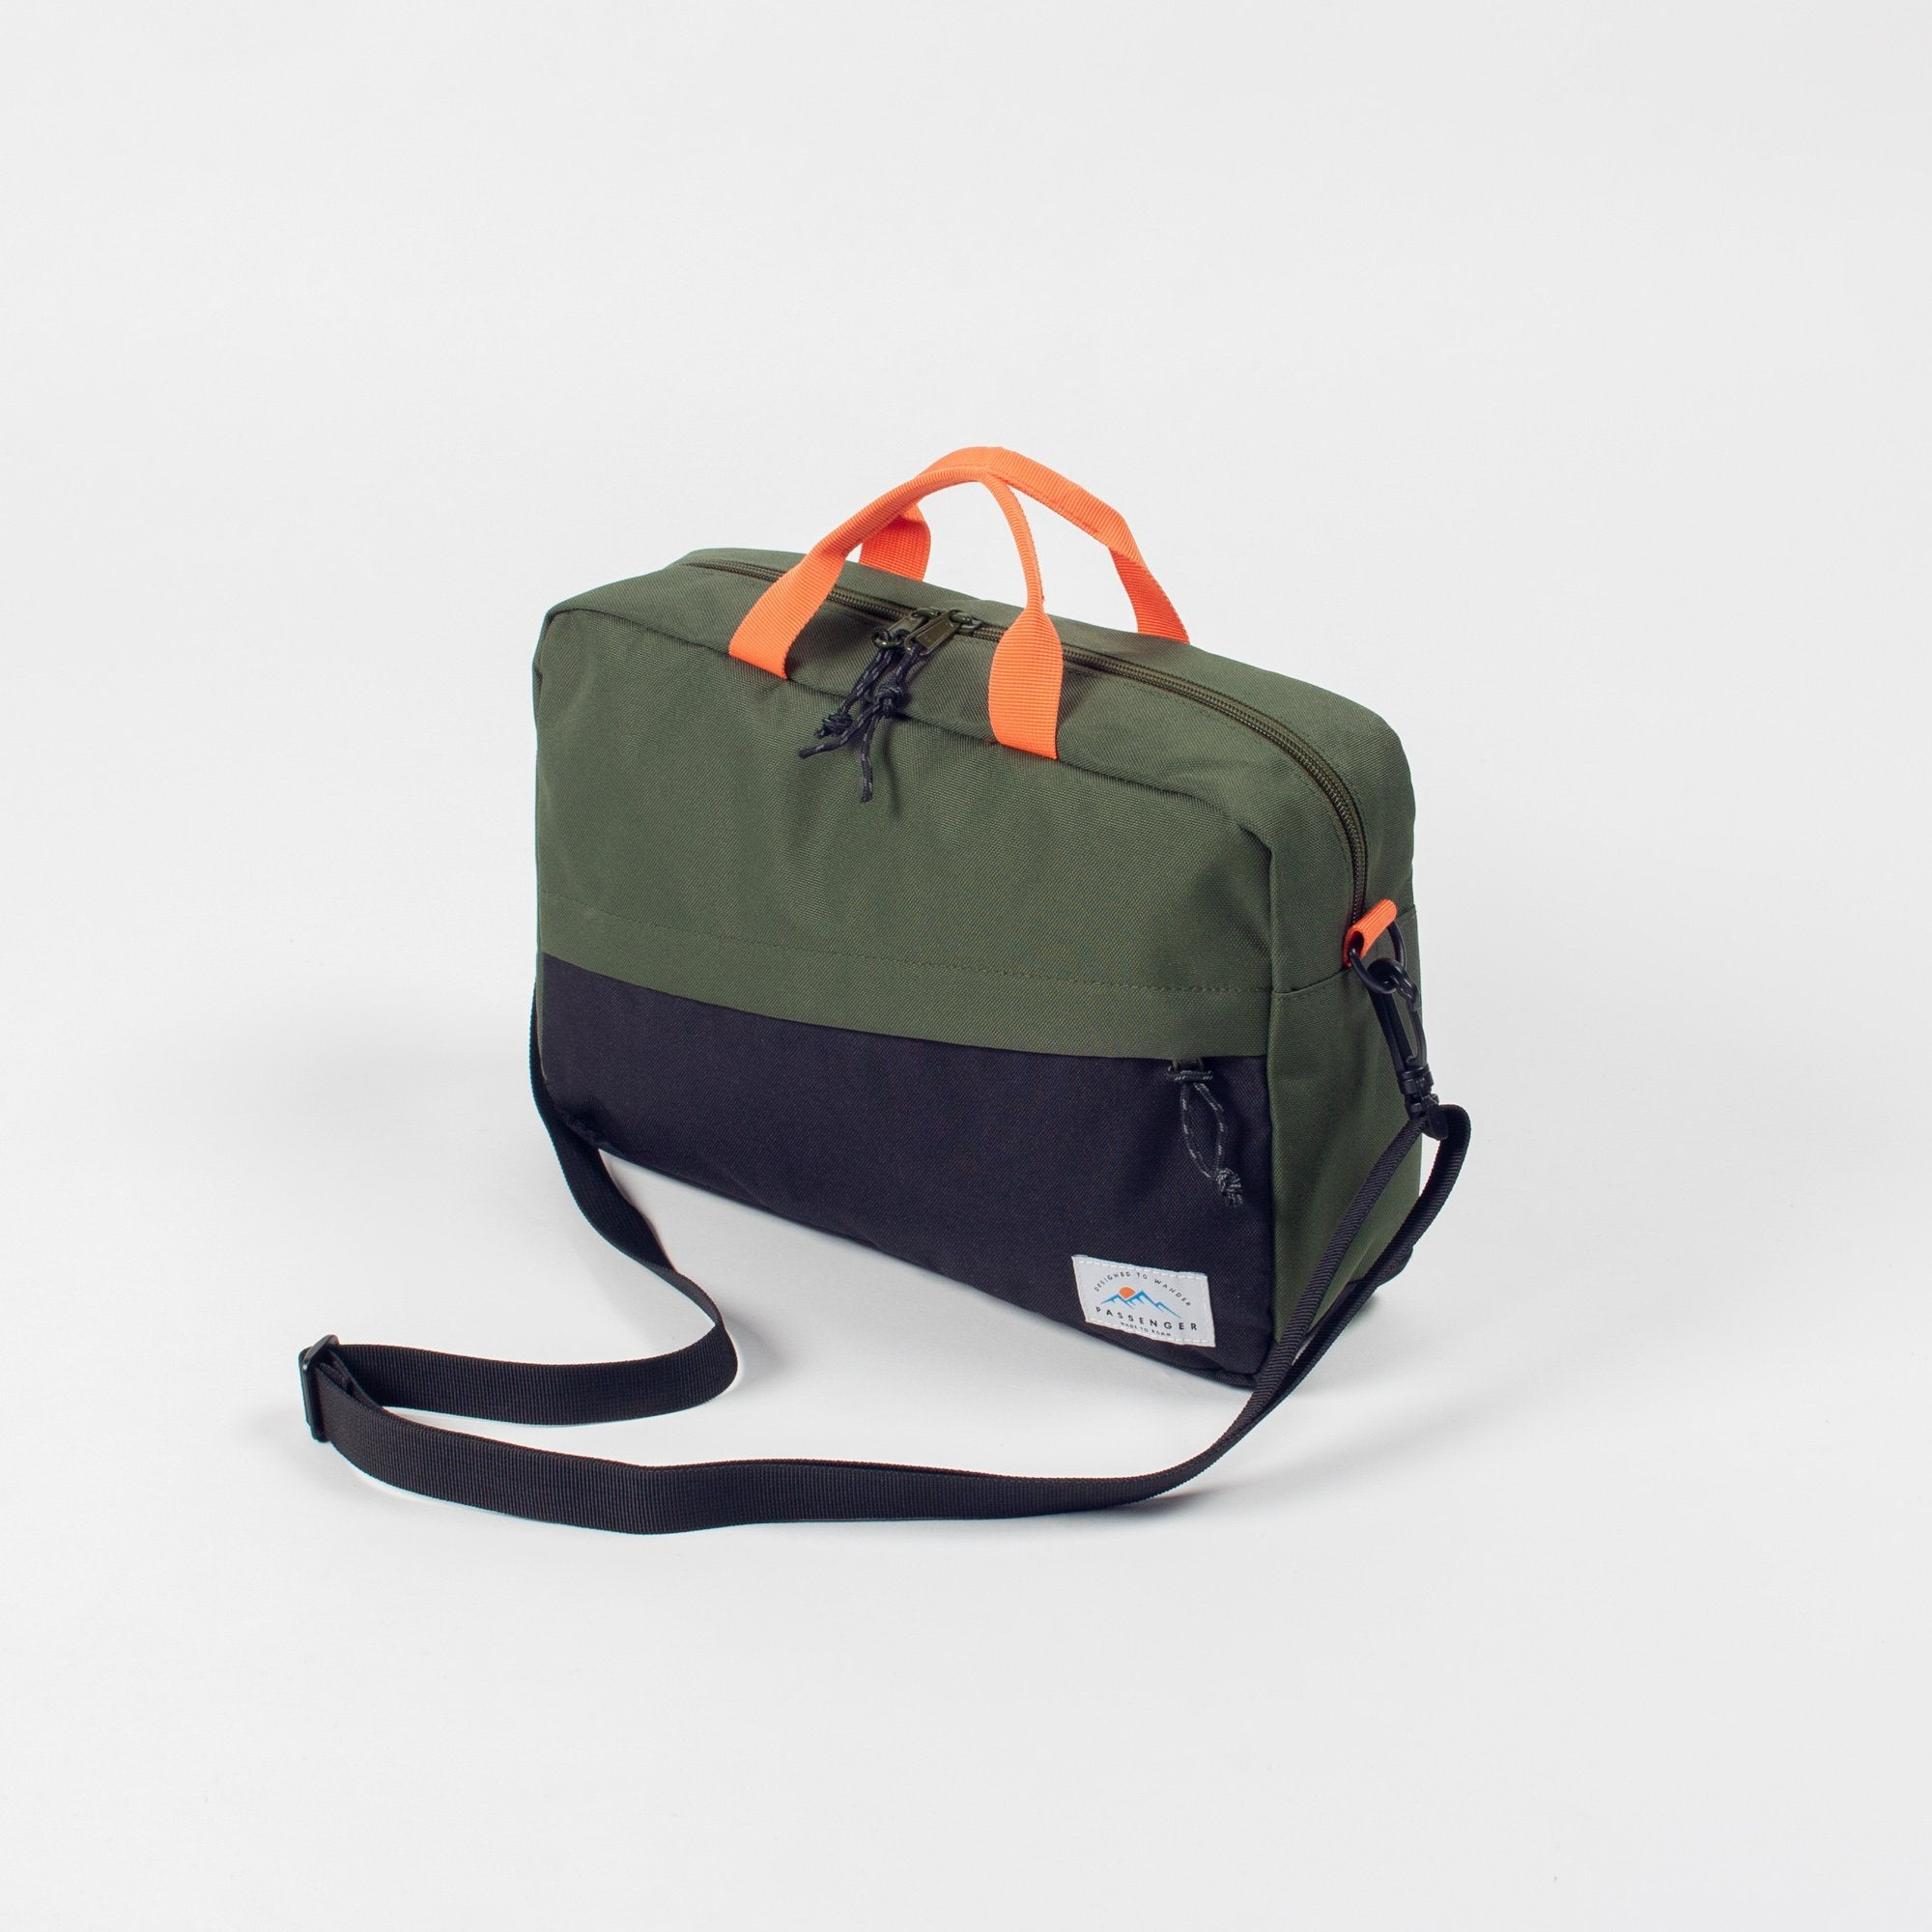 Ranger Essentials Pack - Olive/Black image 5